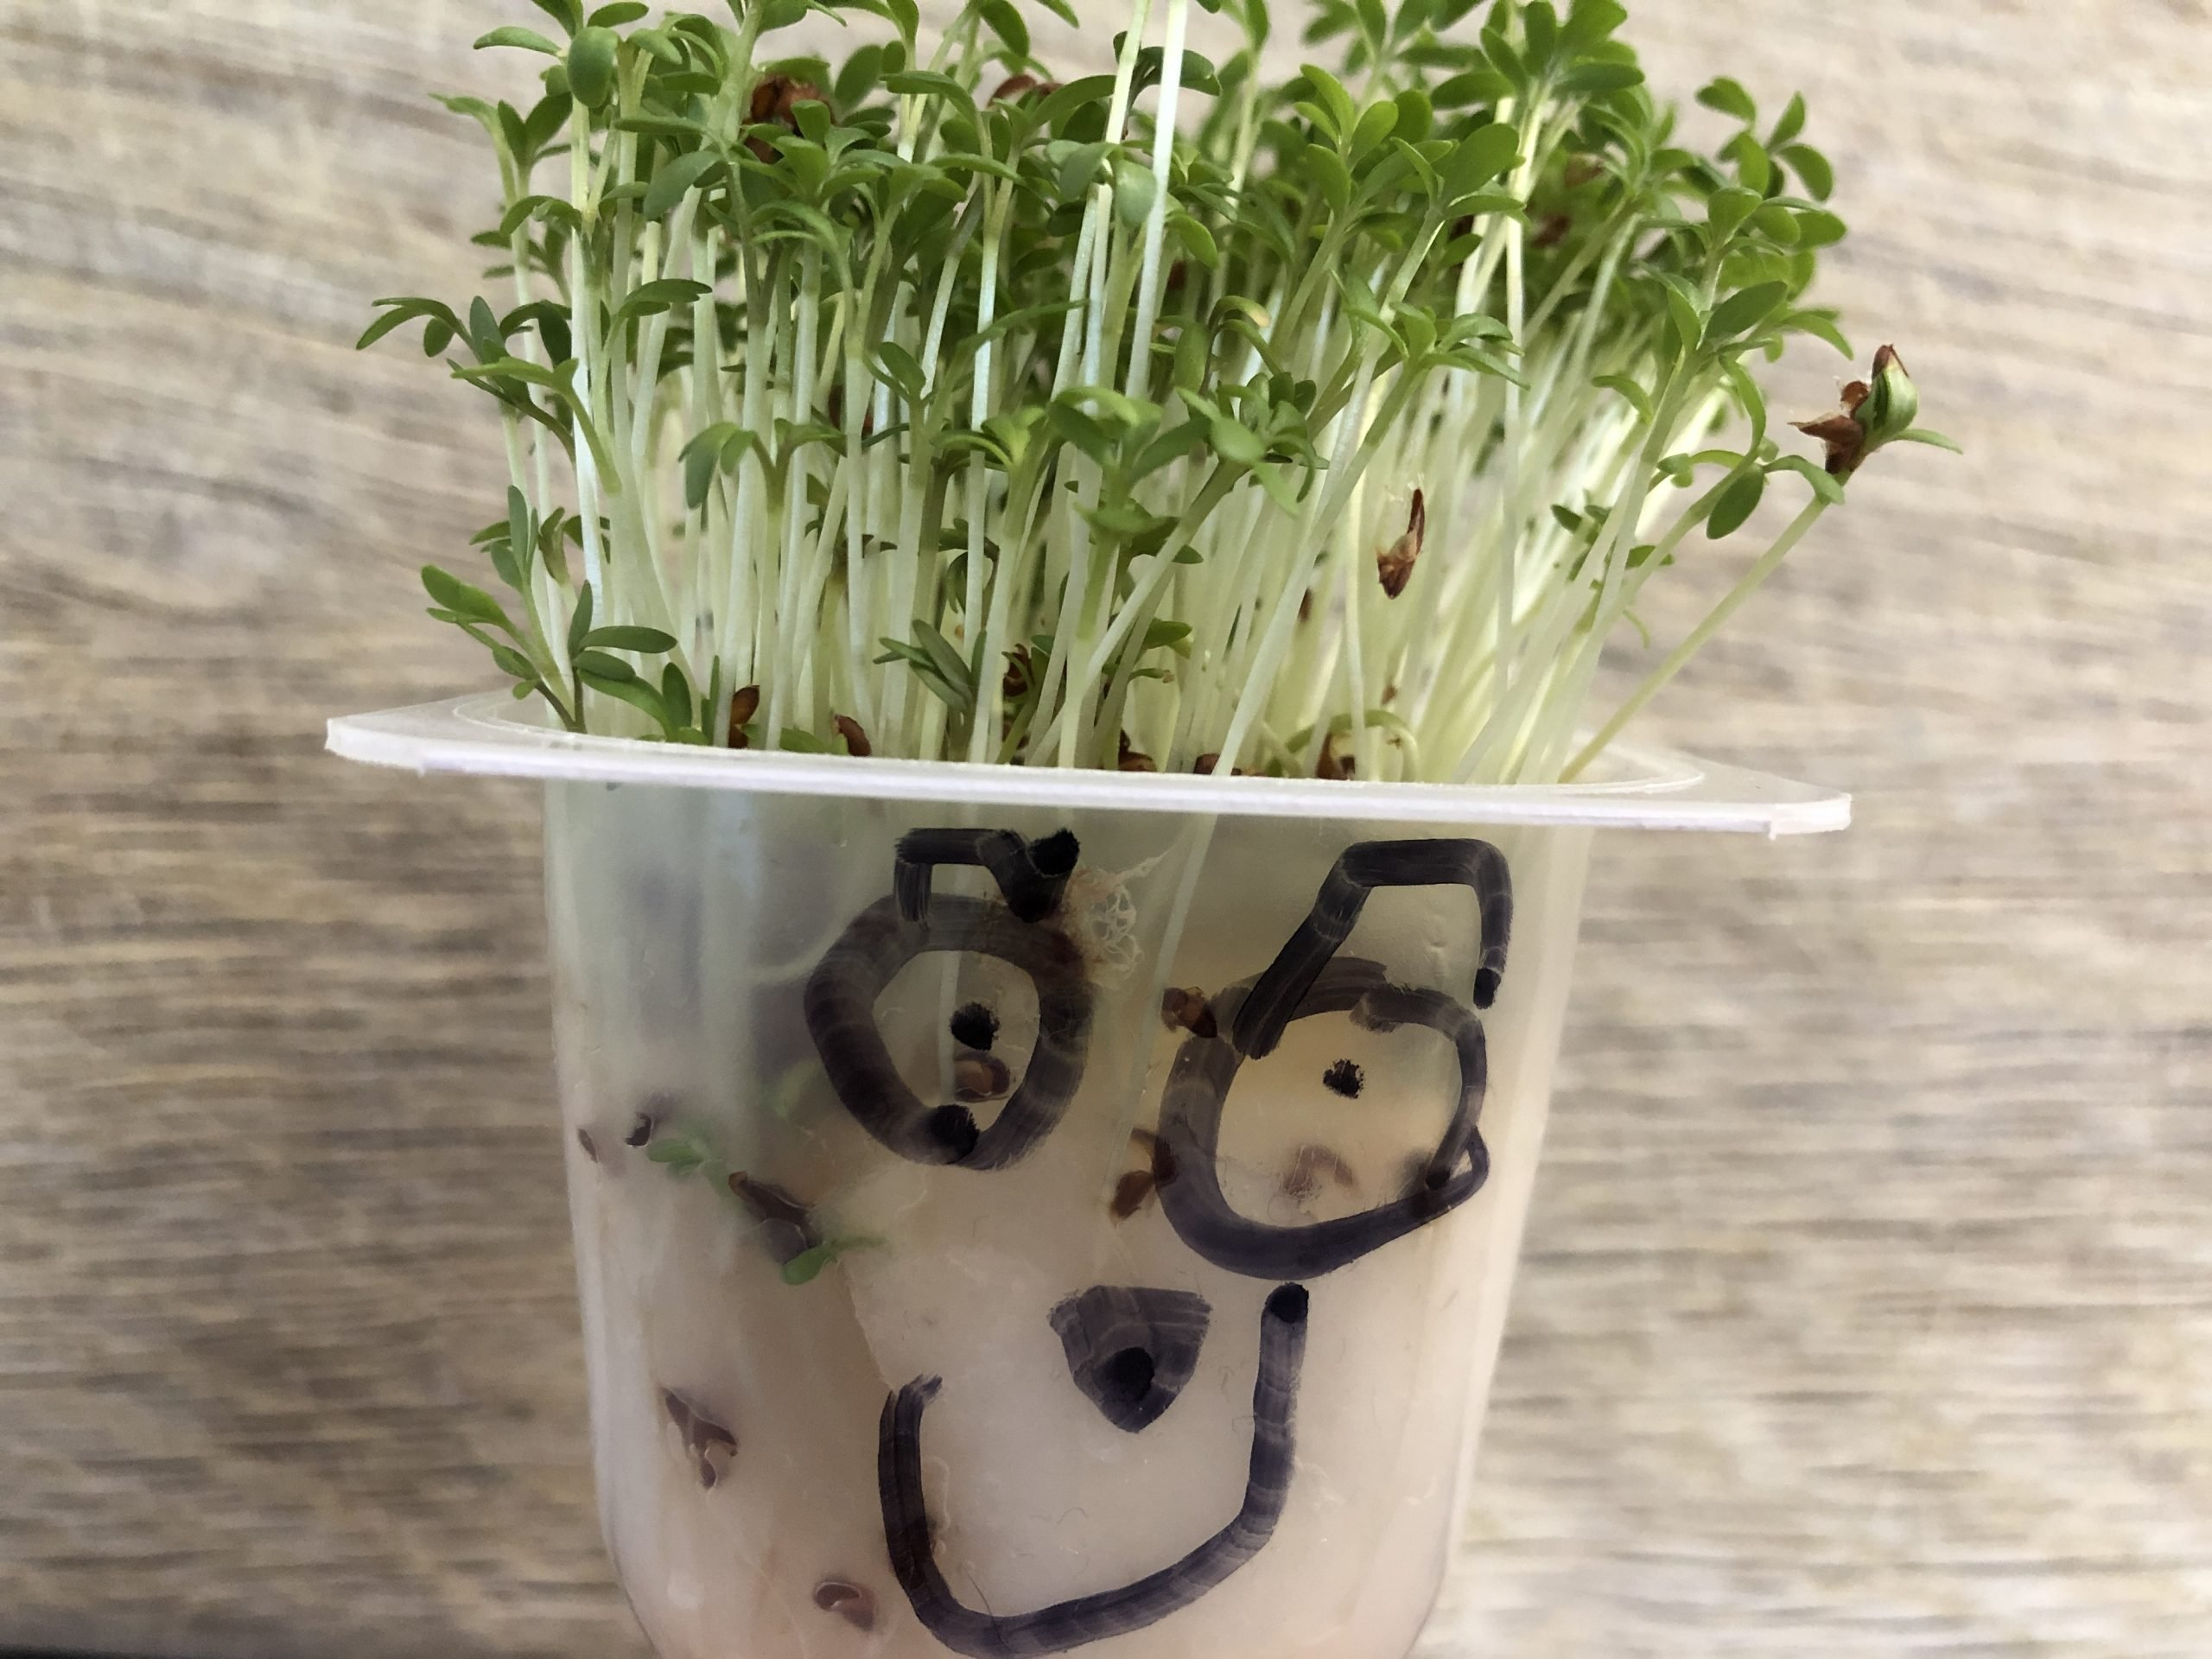 Making a Cress Head